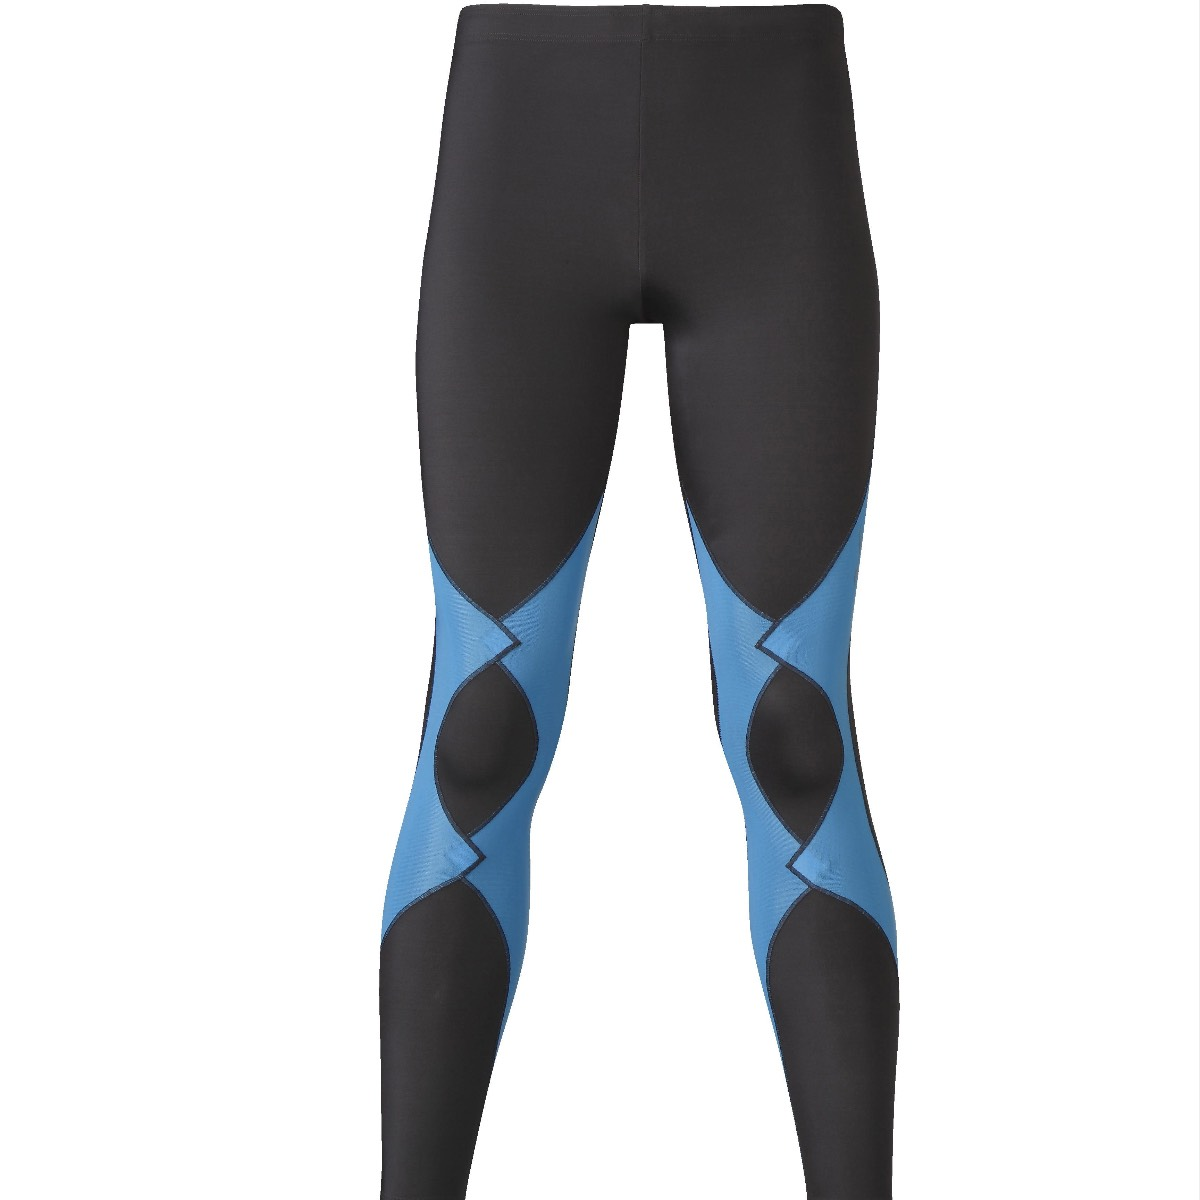 Cw-x Sports Compression Male